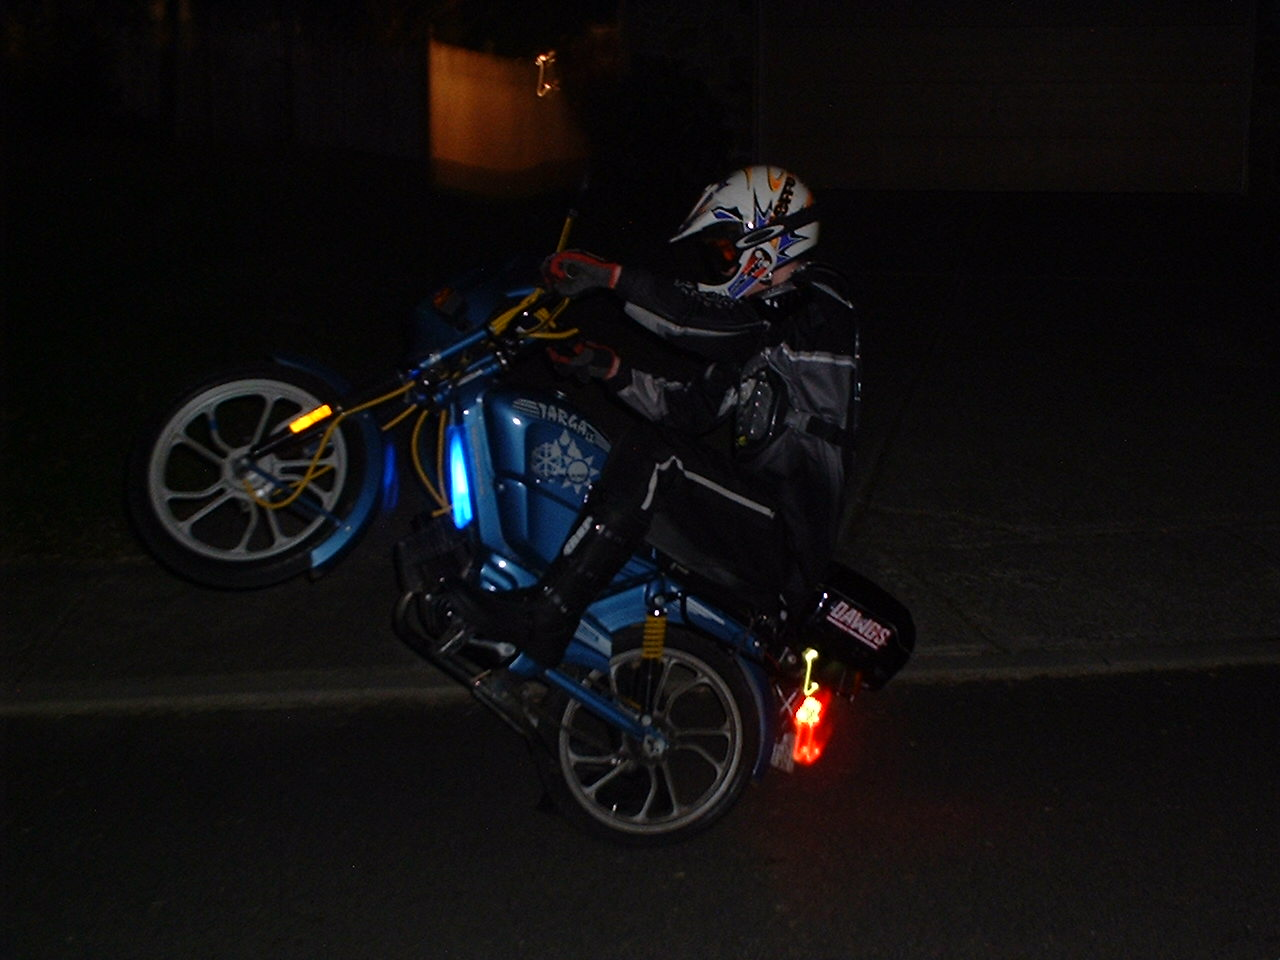 (Mike doing a wheelie on his Tomos)